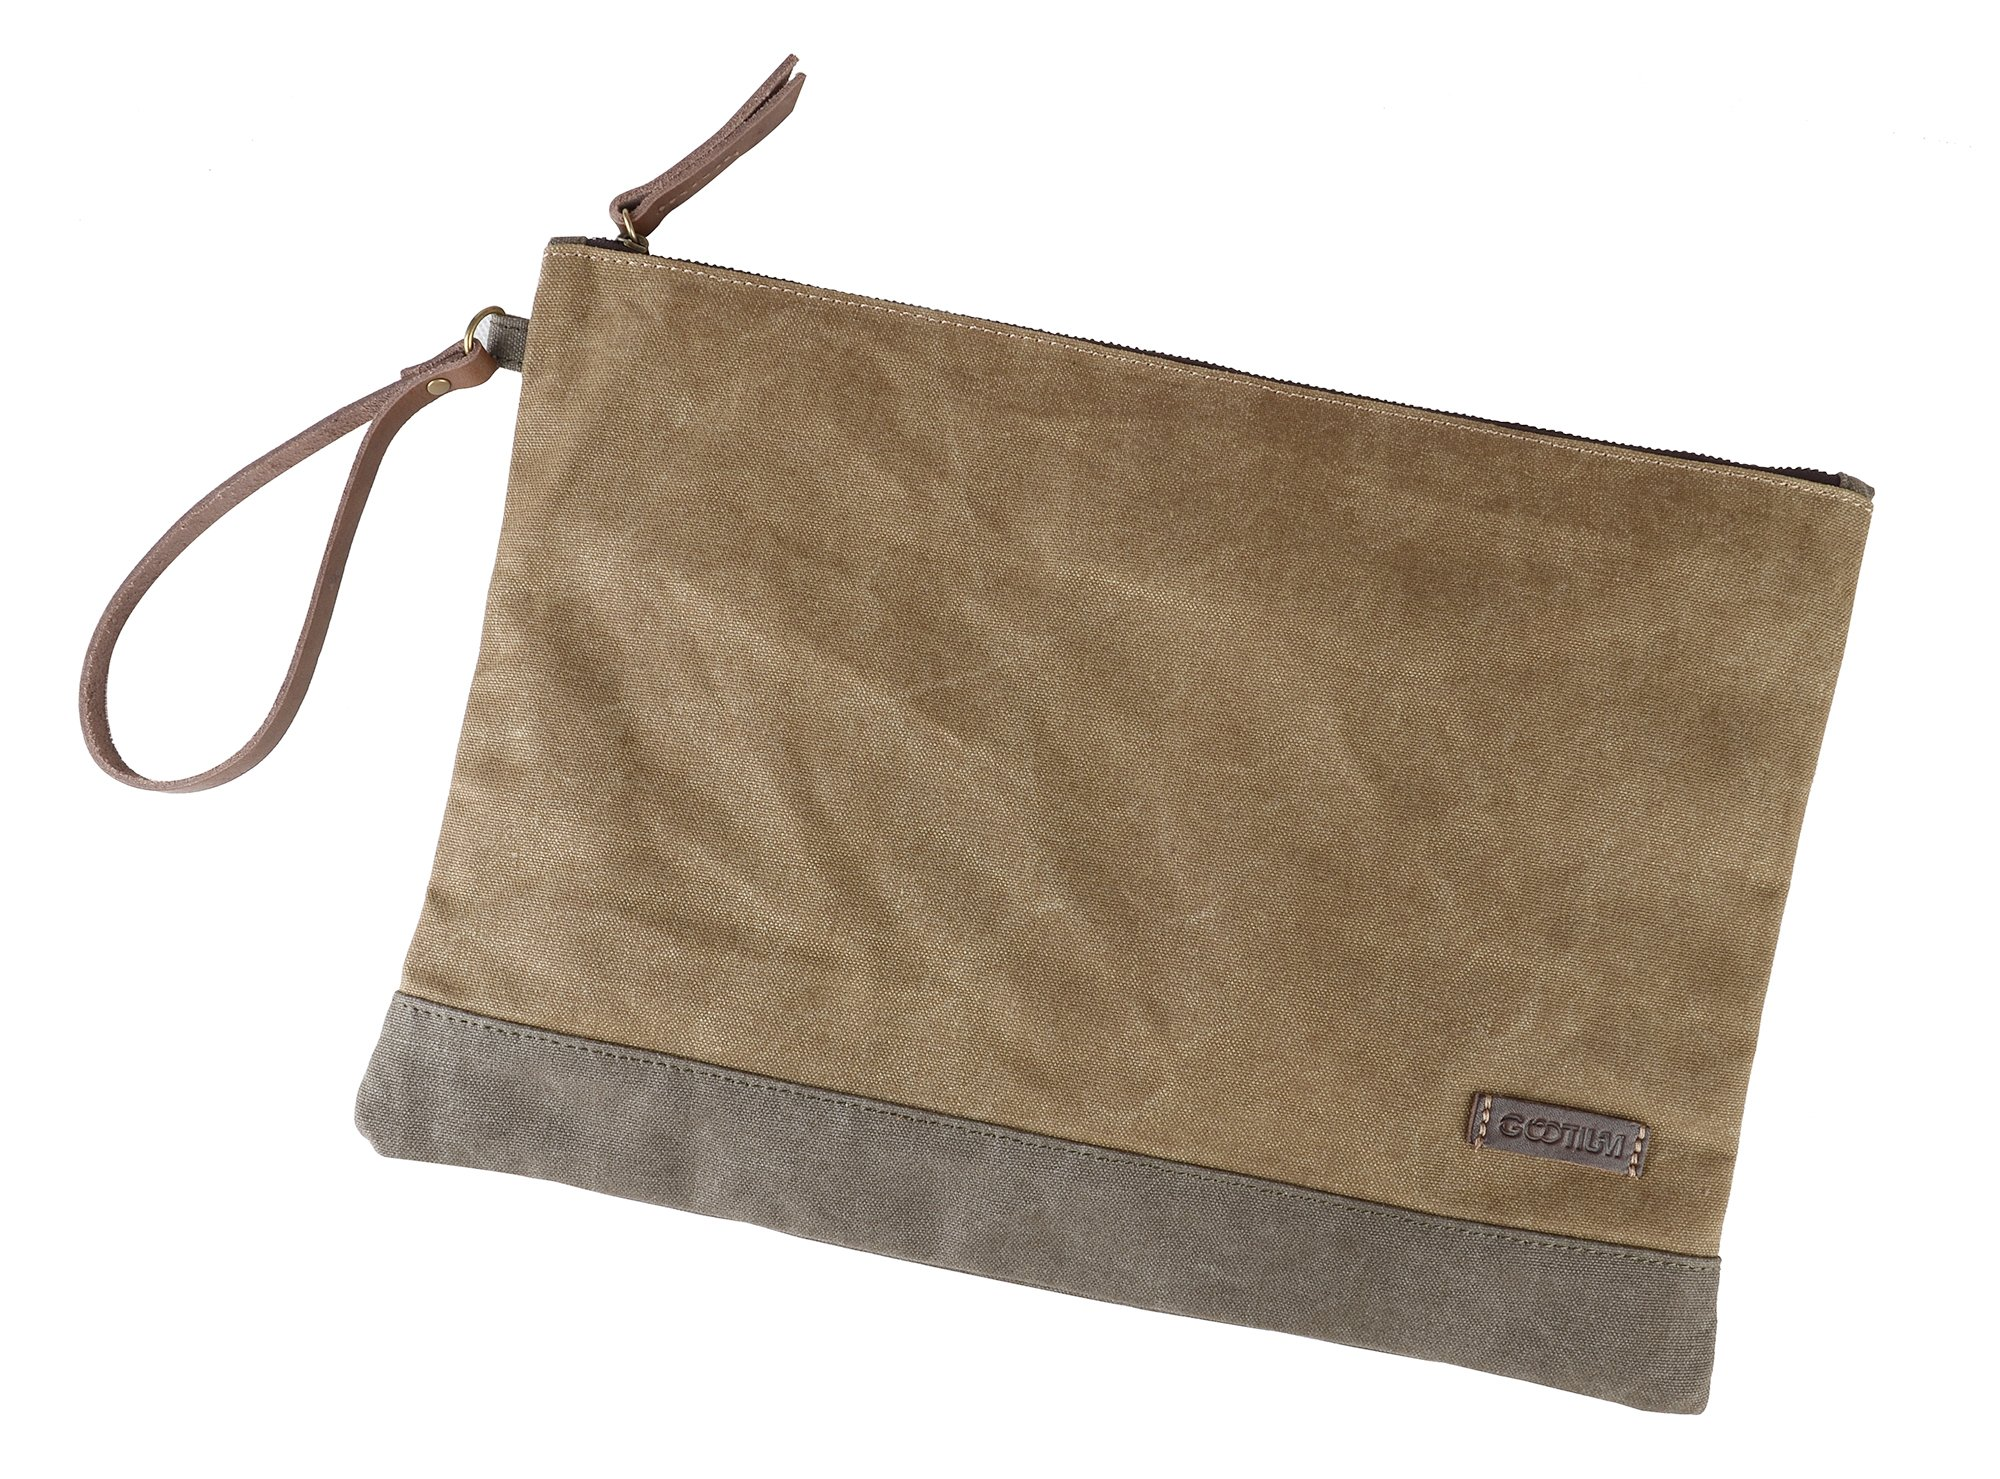 Gootium Waxed Canvas Multipurpose File Envelope Accessories Organizer For Artists And Office, 13''x9.4'', A4 Size, Water Resistant, Khaki